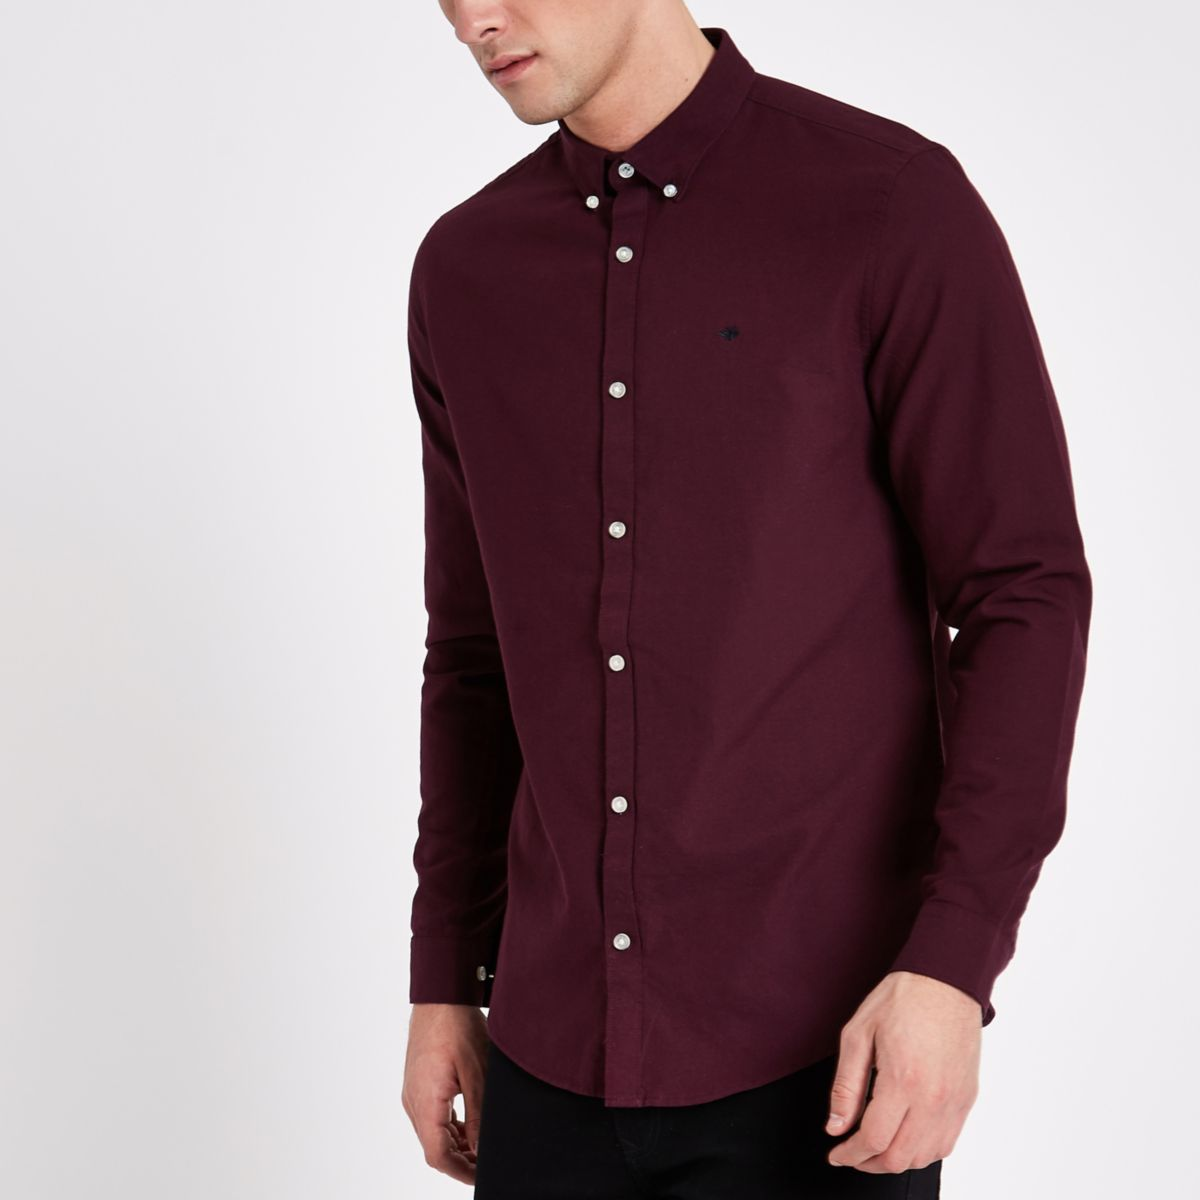 Burgundy chest embroidered Oxford shirt